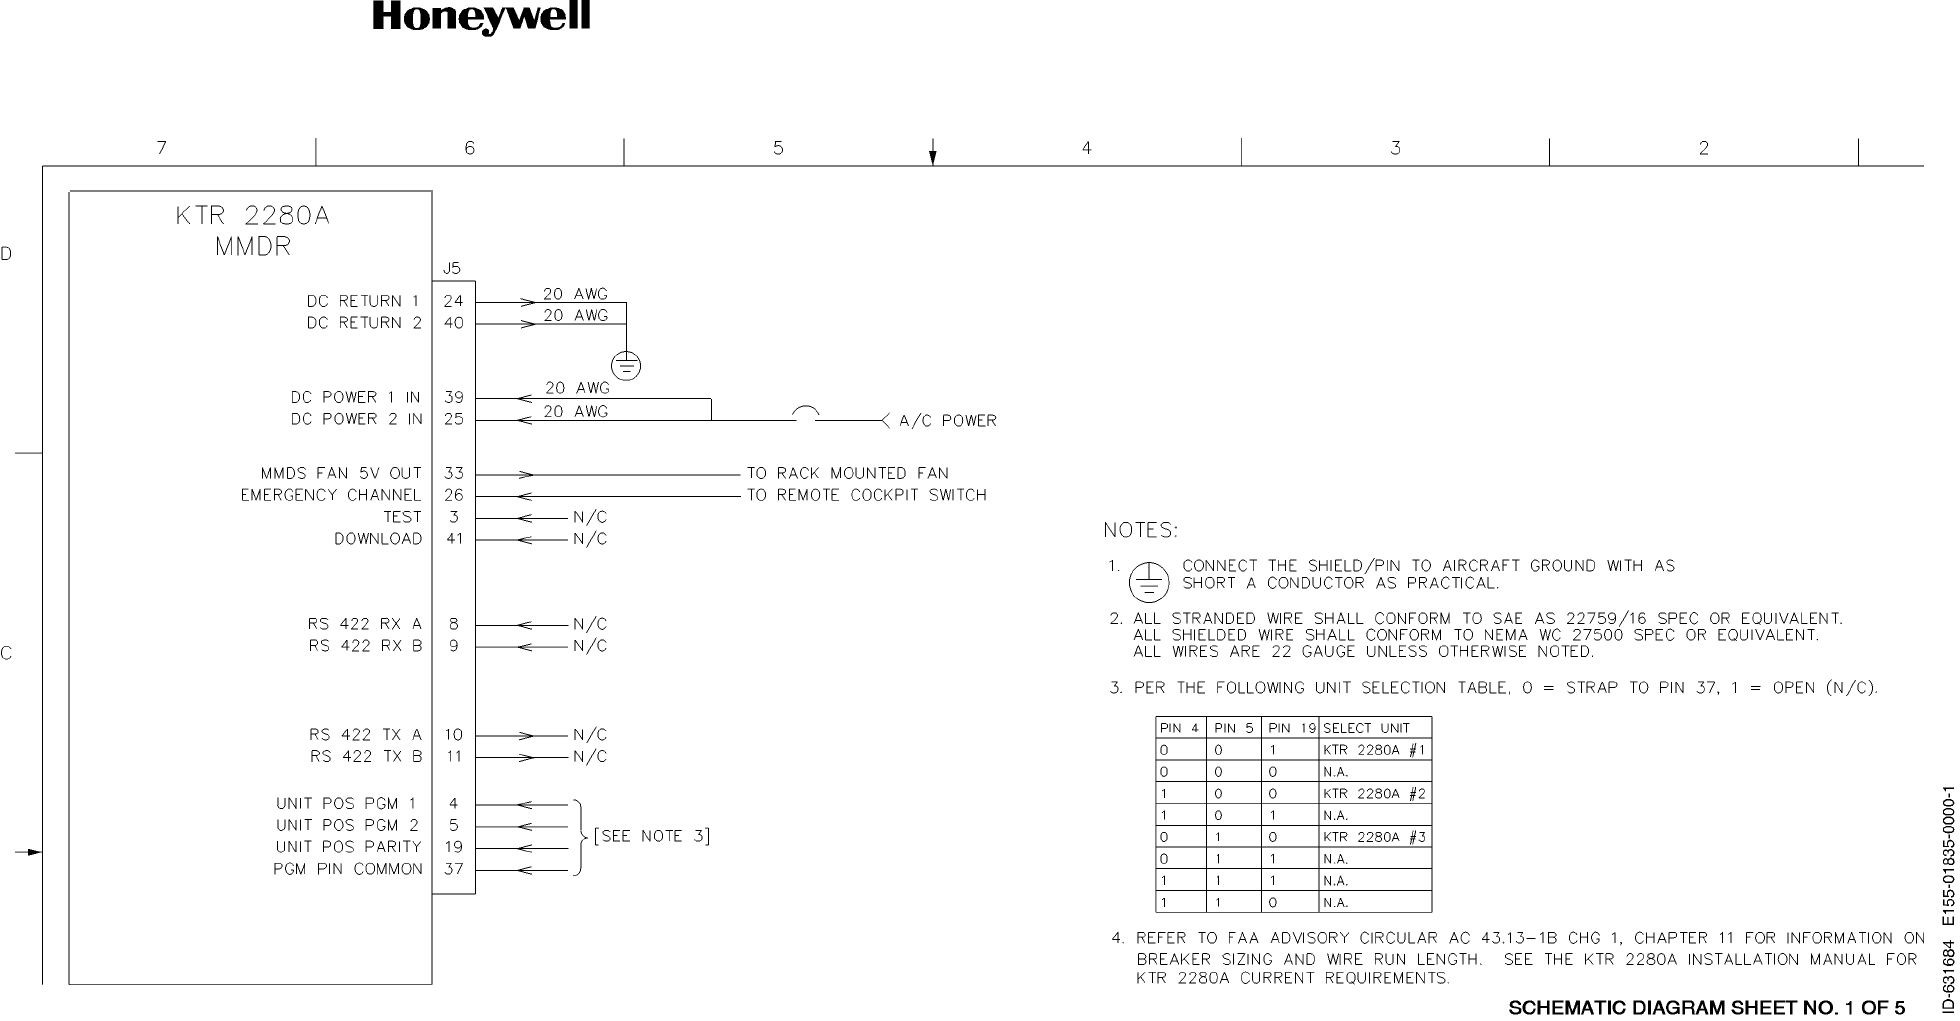 Honeywell Ktr2280a Licensed Non Broadcast Aeronautical Transmitter Note 3 Circuit Diagram System Installation Manual